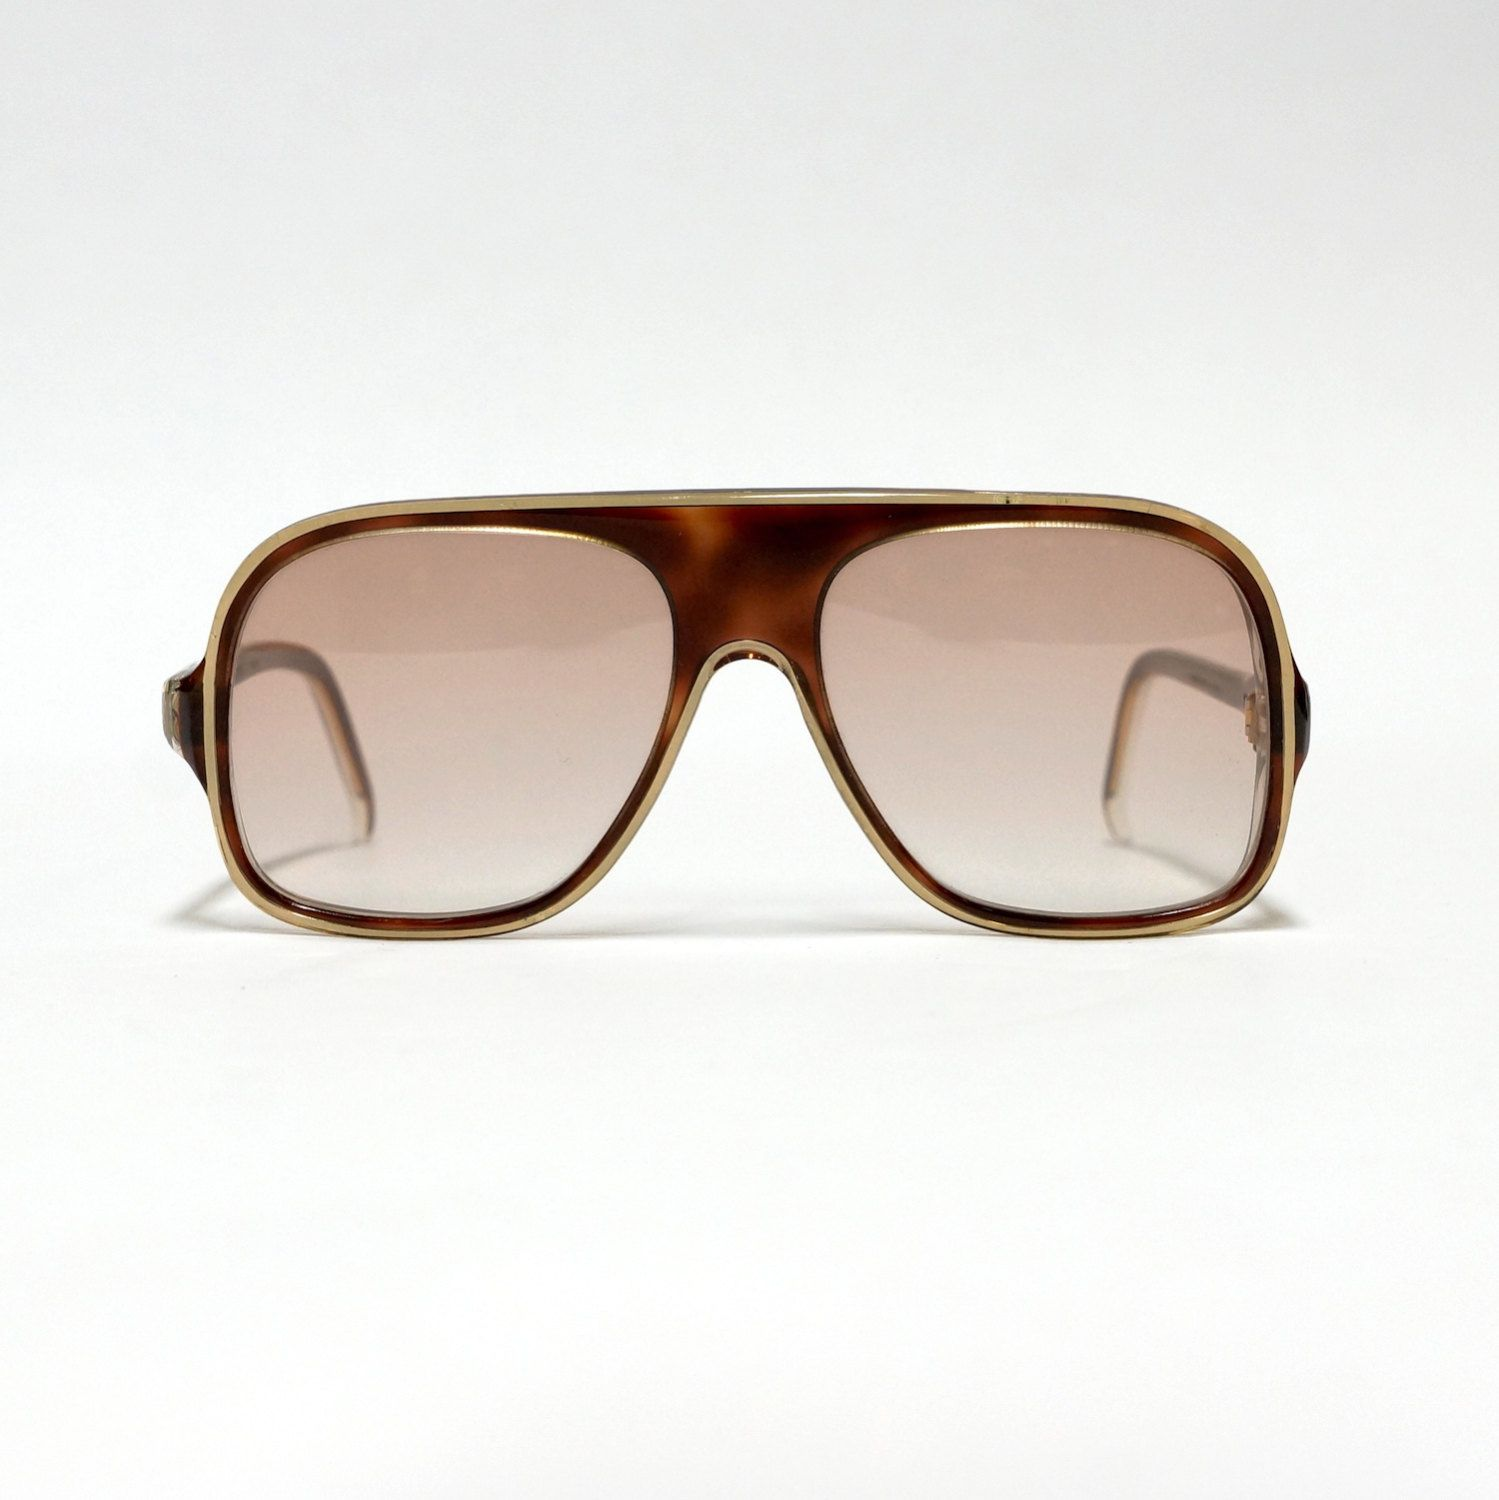 cec286dbfd Vintage Nina Ricci aviator from the 80s